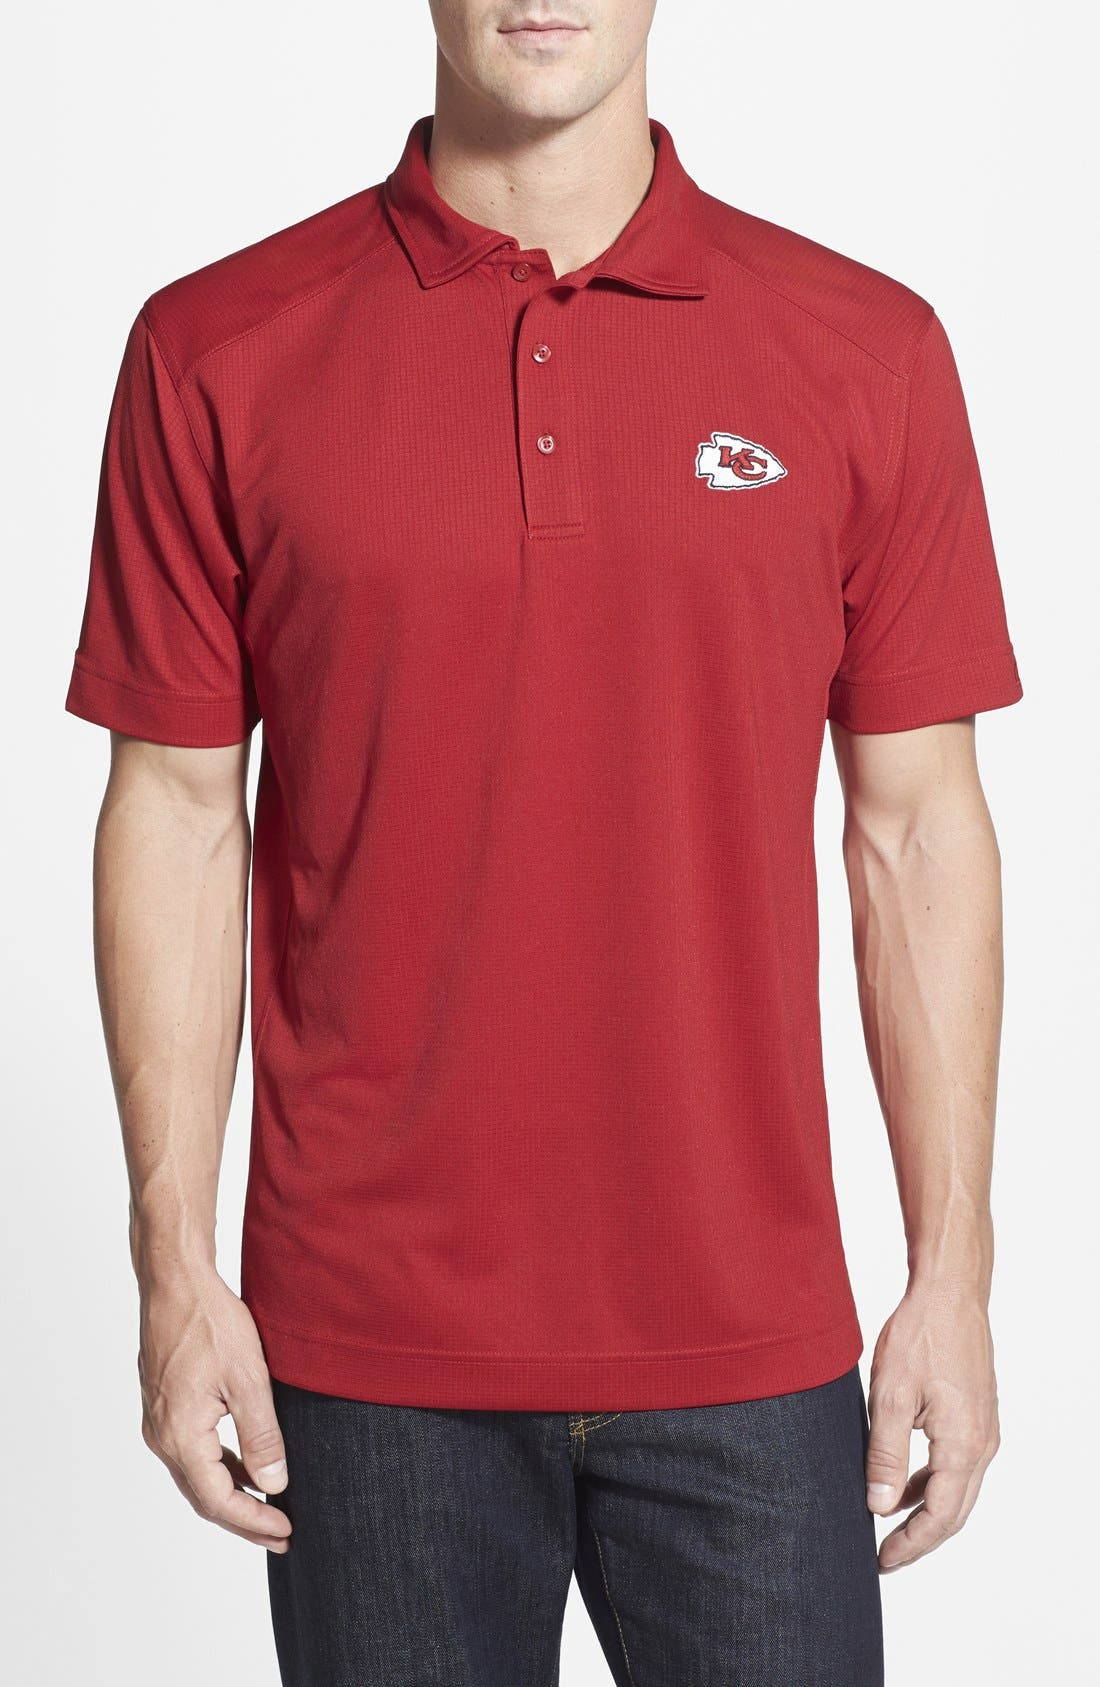 Cutter & Buck Kansas City Chiefs - Genre DryTec Moisture Wicking Polo